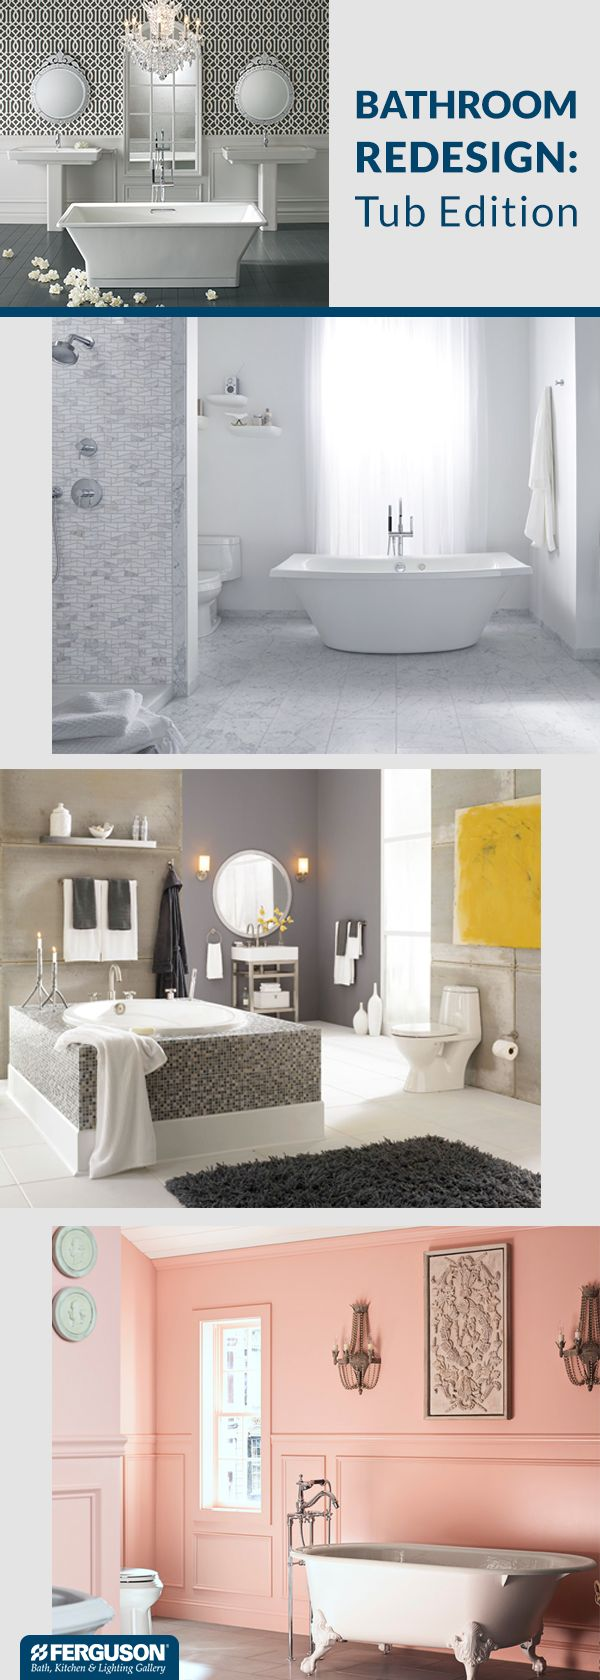 Find this Pin and more on Master Bathrooms by fergusongallery. 289 best Master Bathrooms images on Pinterest   Master bathrooms